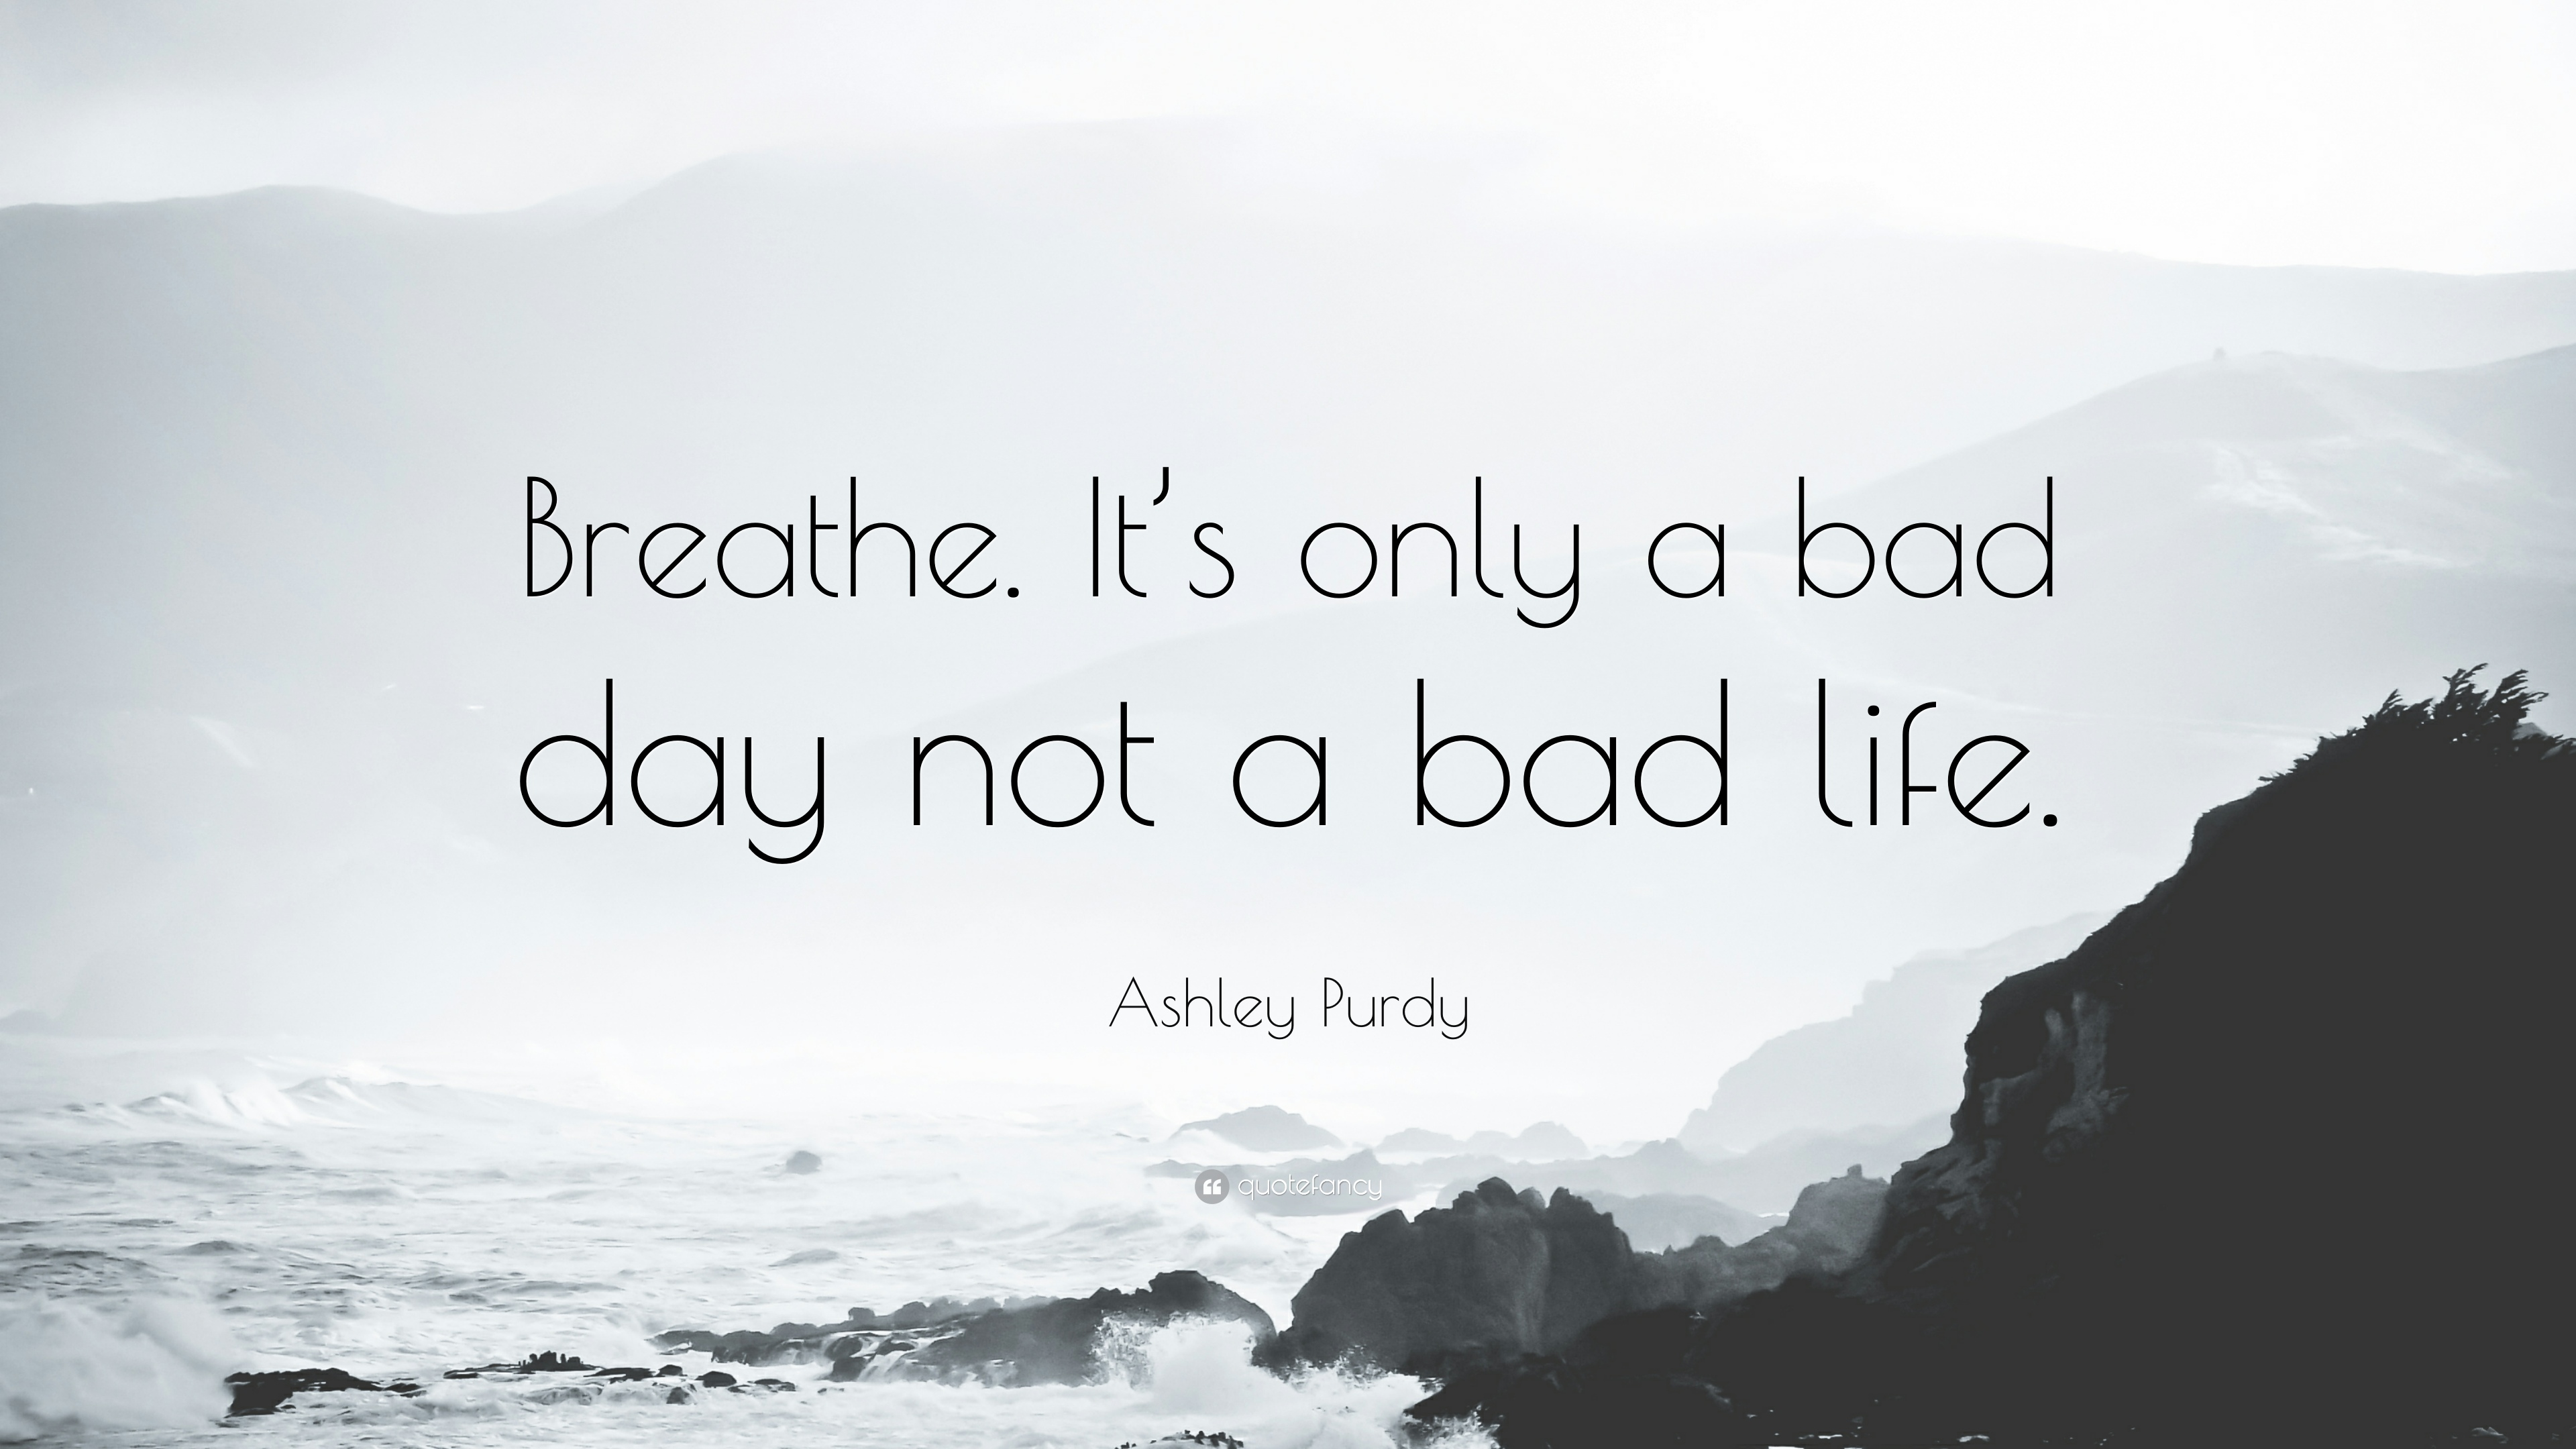 Dr Seuss Quotes Love Wallpaper Ashley Purdy Quote Breathe It S Only A Bad Day Not A